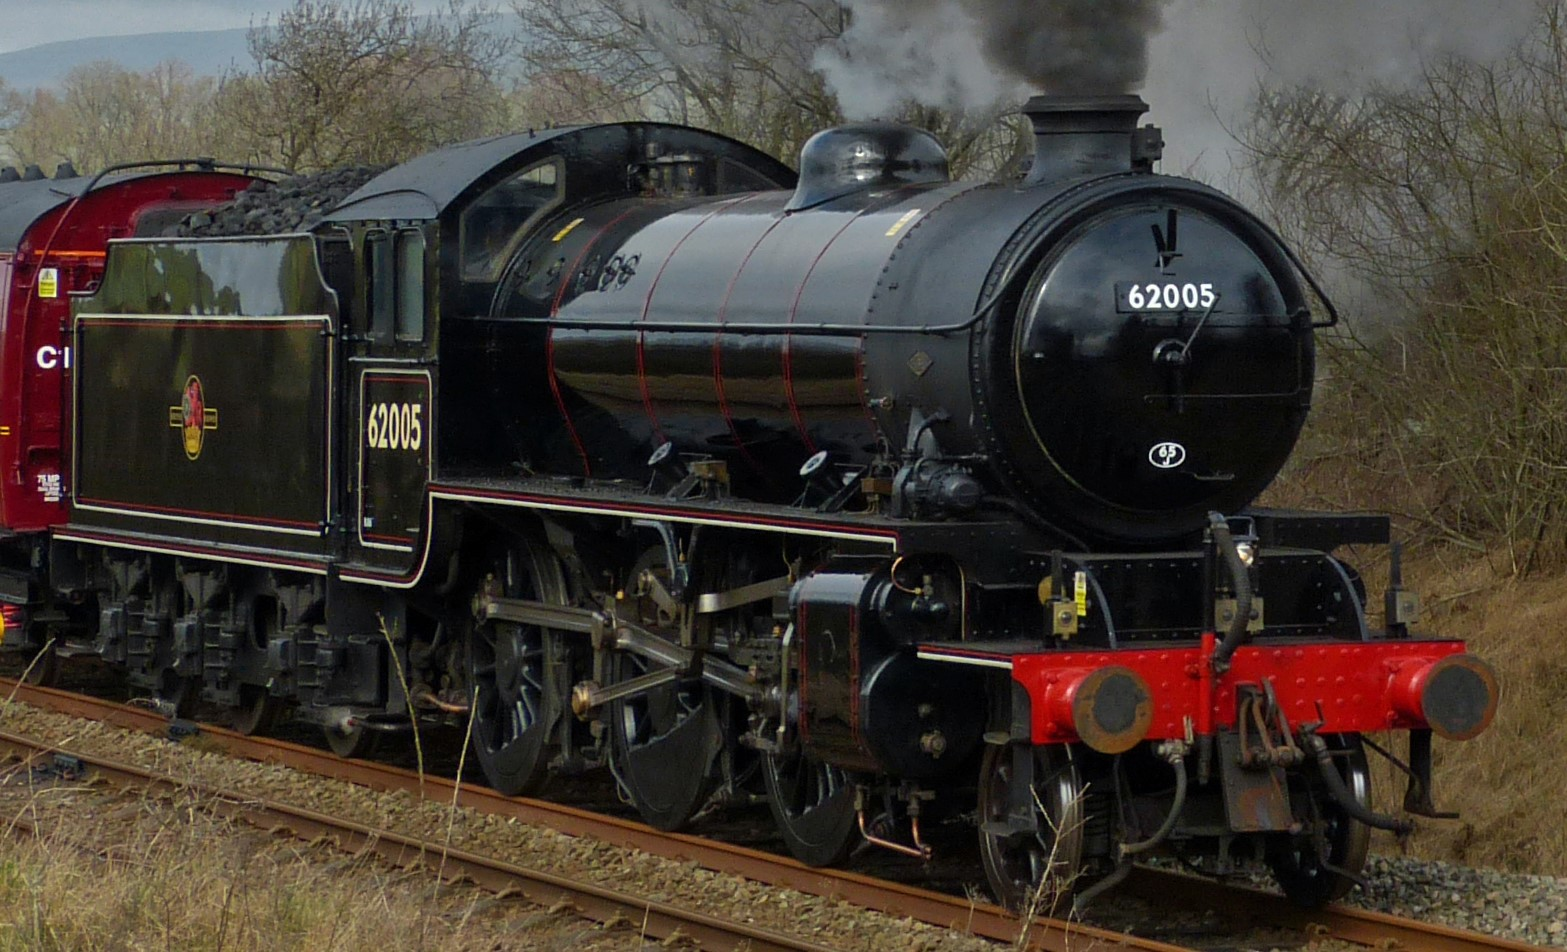 62005 near Clapham Viaduct in March 2014. ©Andrew